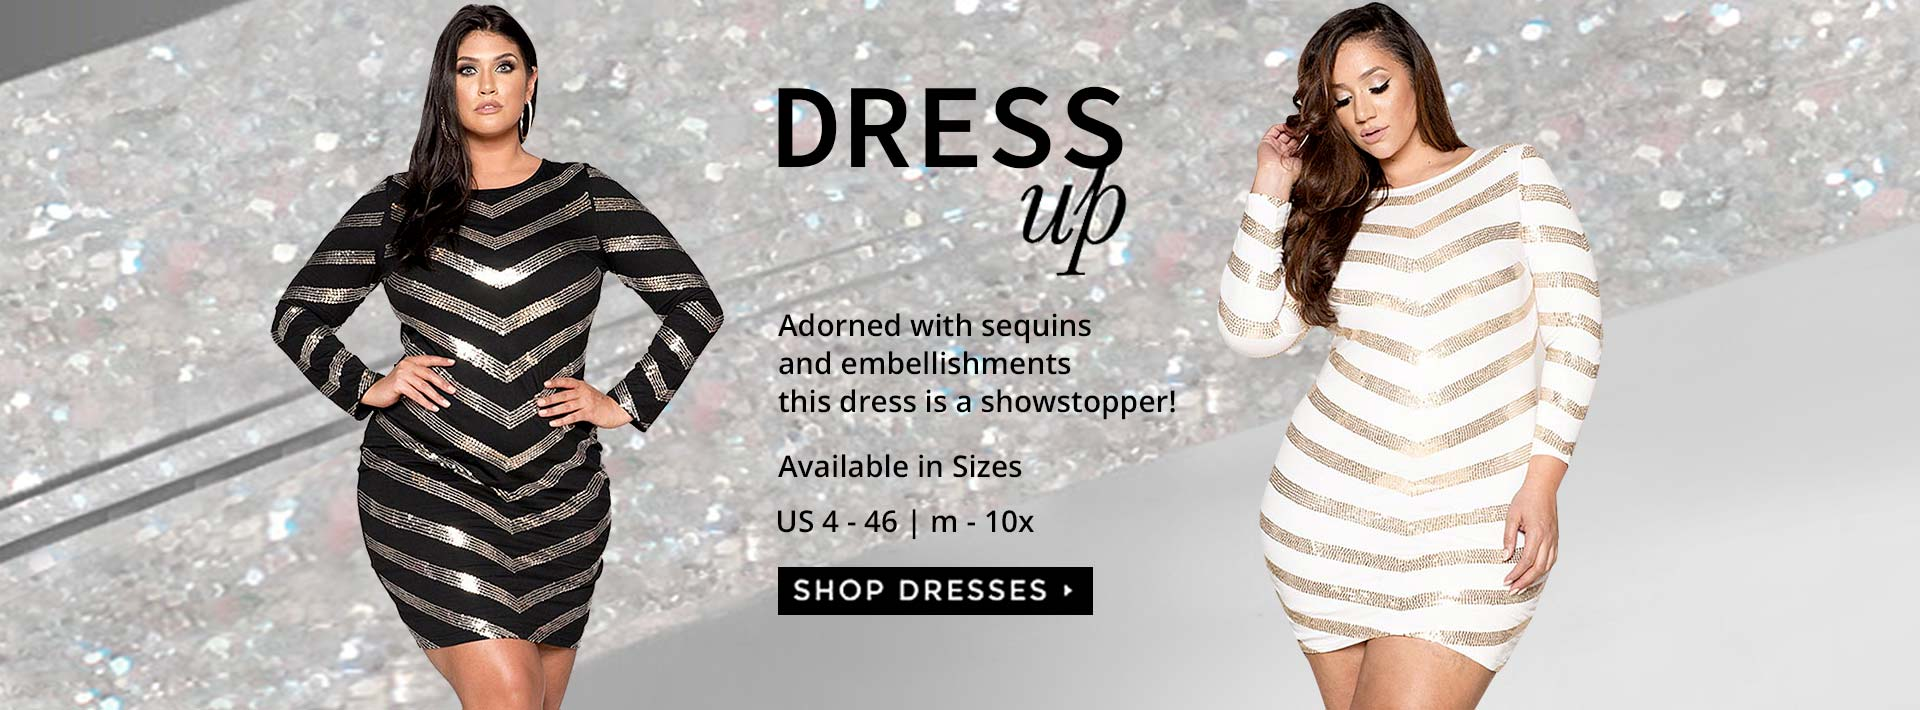 Custom Clothing For Women With Curves Plus Size Fashion Democracy